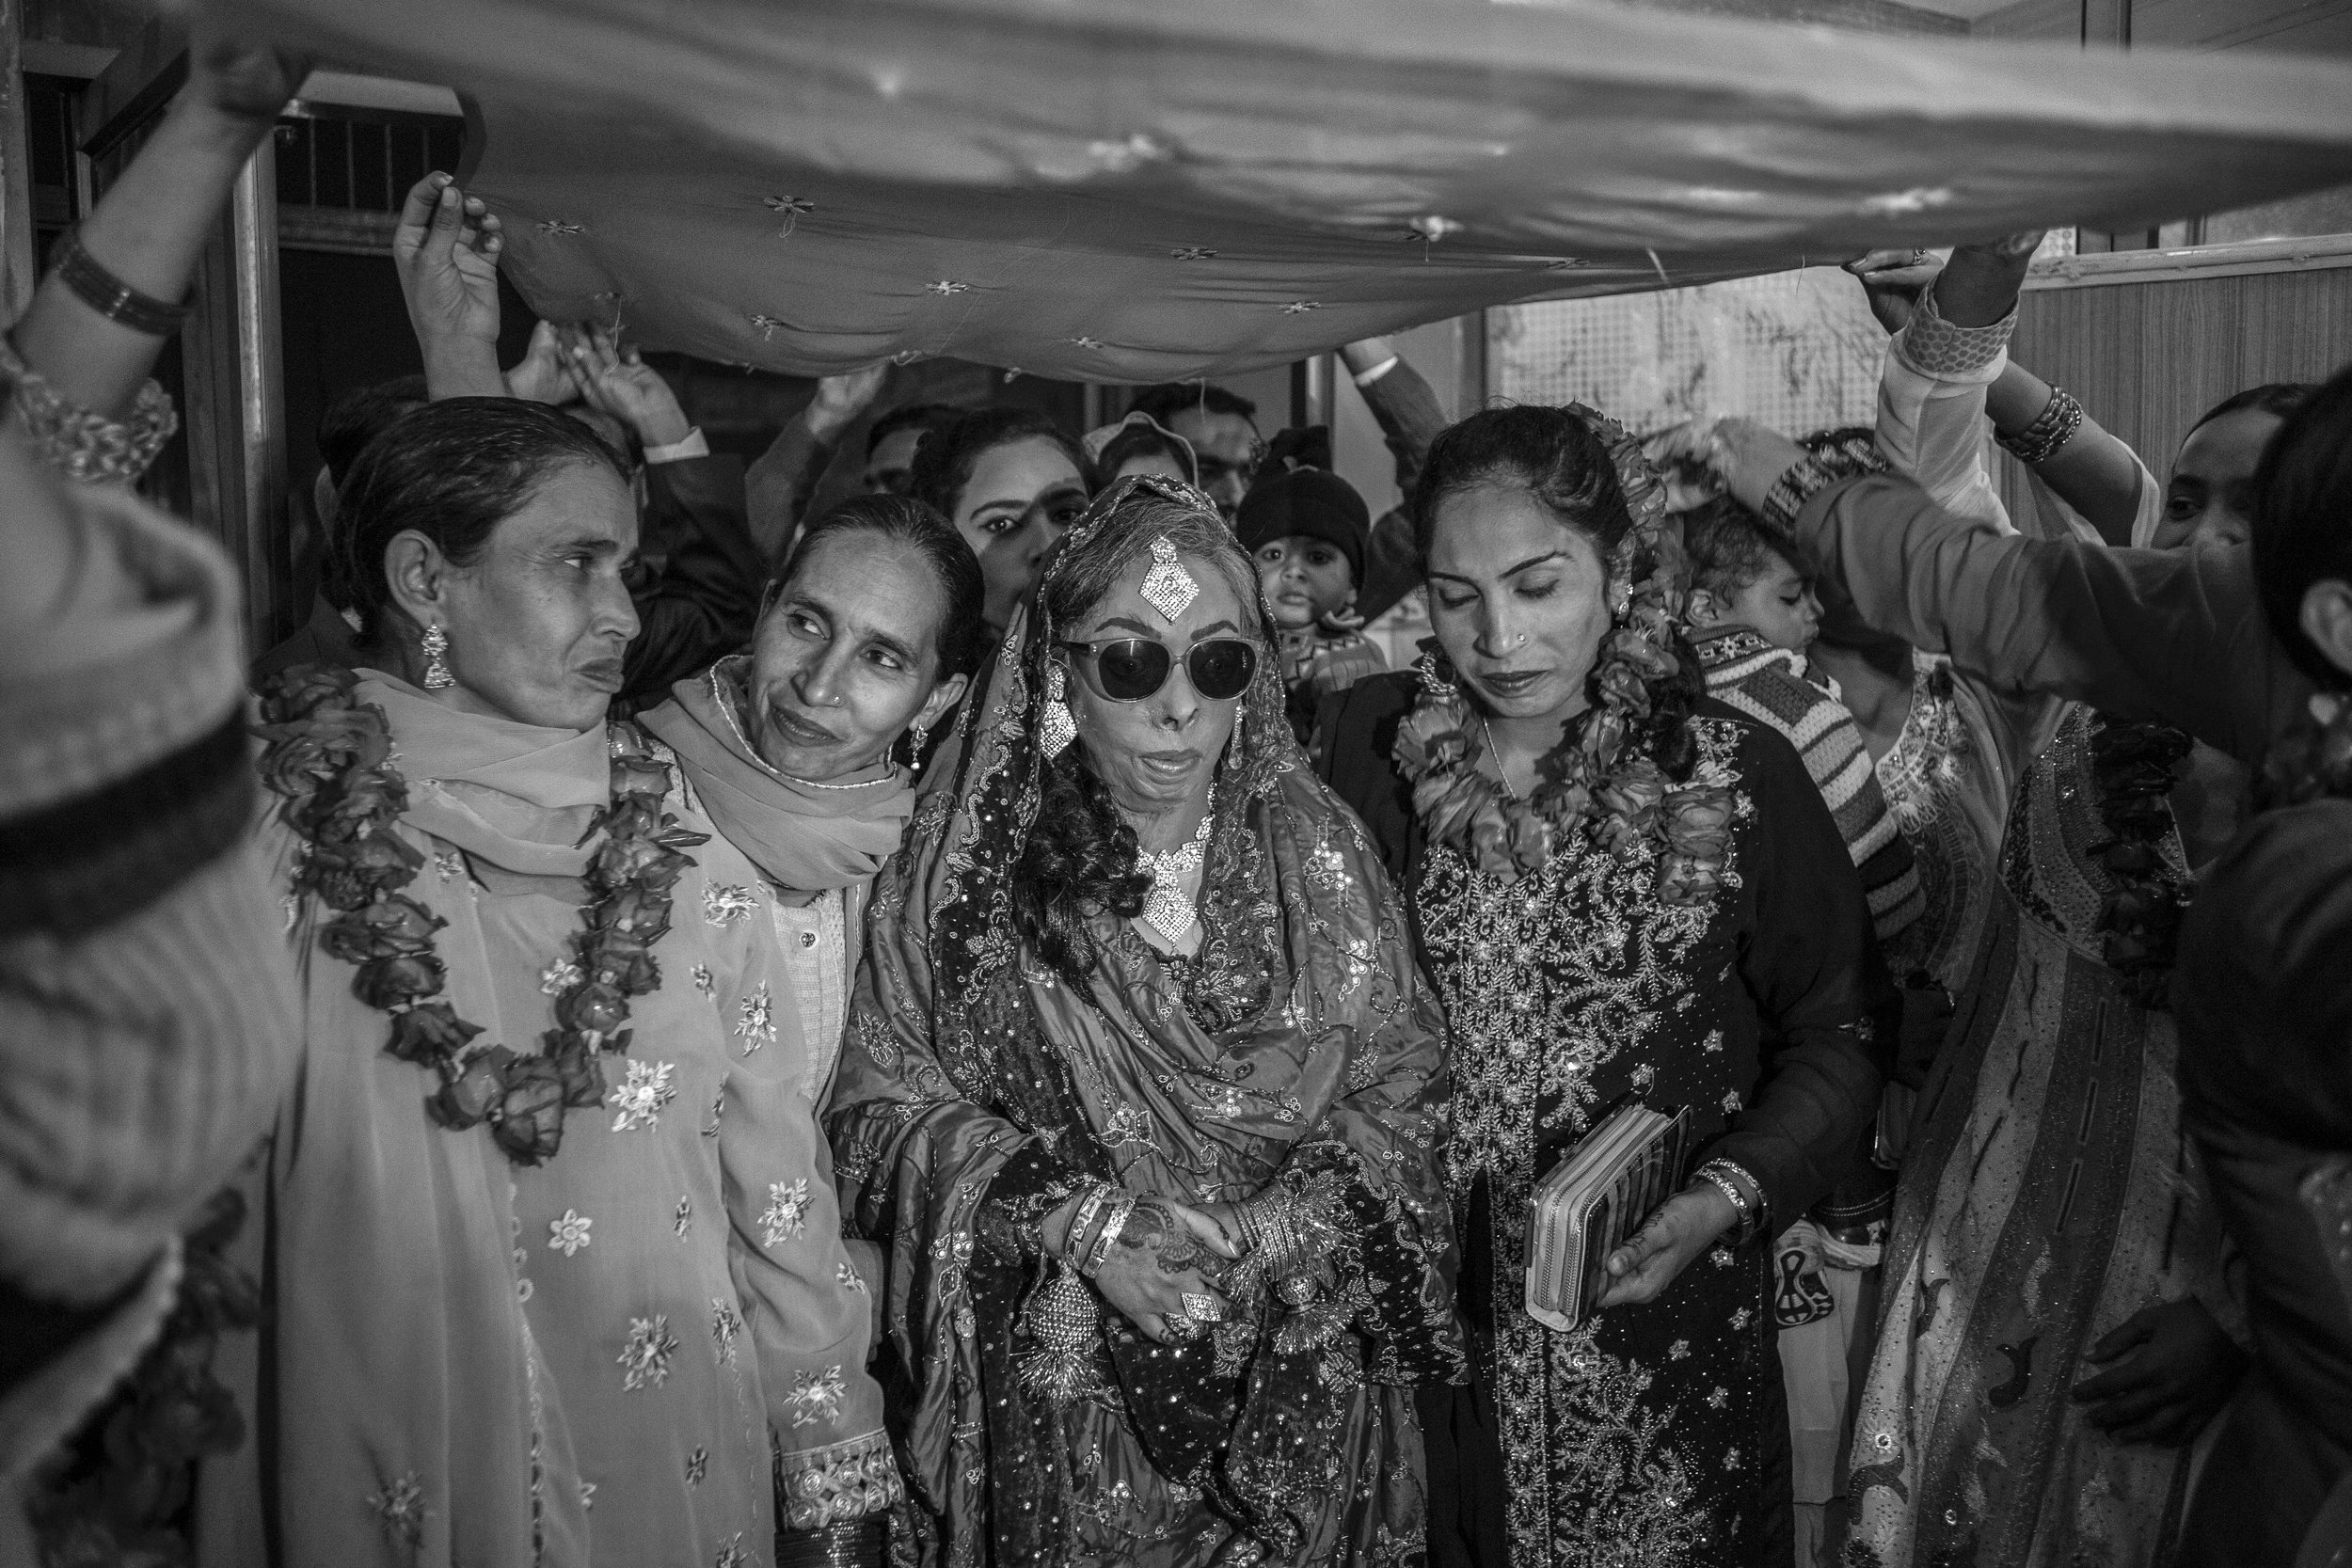 Sarwari Bibi and her sisters walk down the aisle at her wedding ceremony on Jan. 7, 2016 in Lahore, Pakistan.